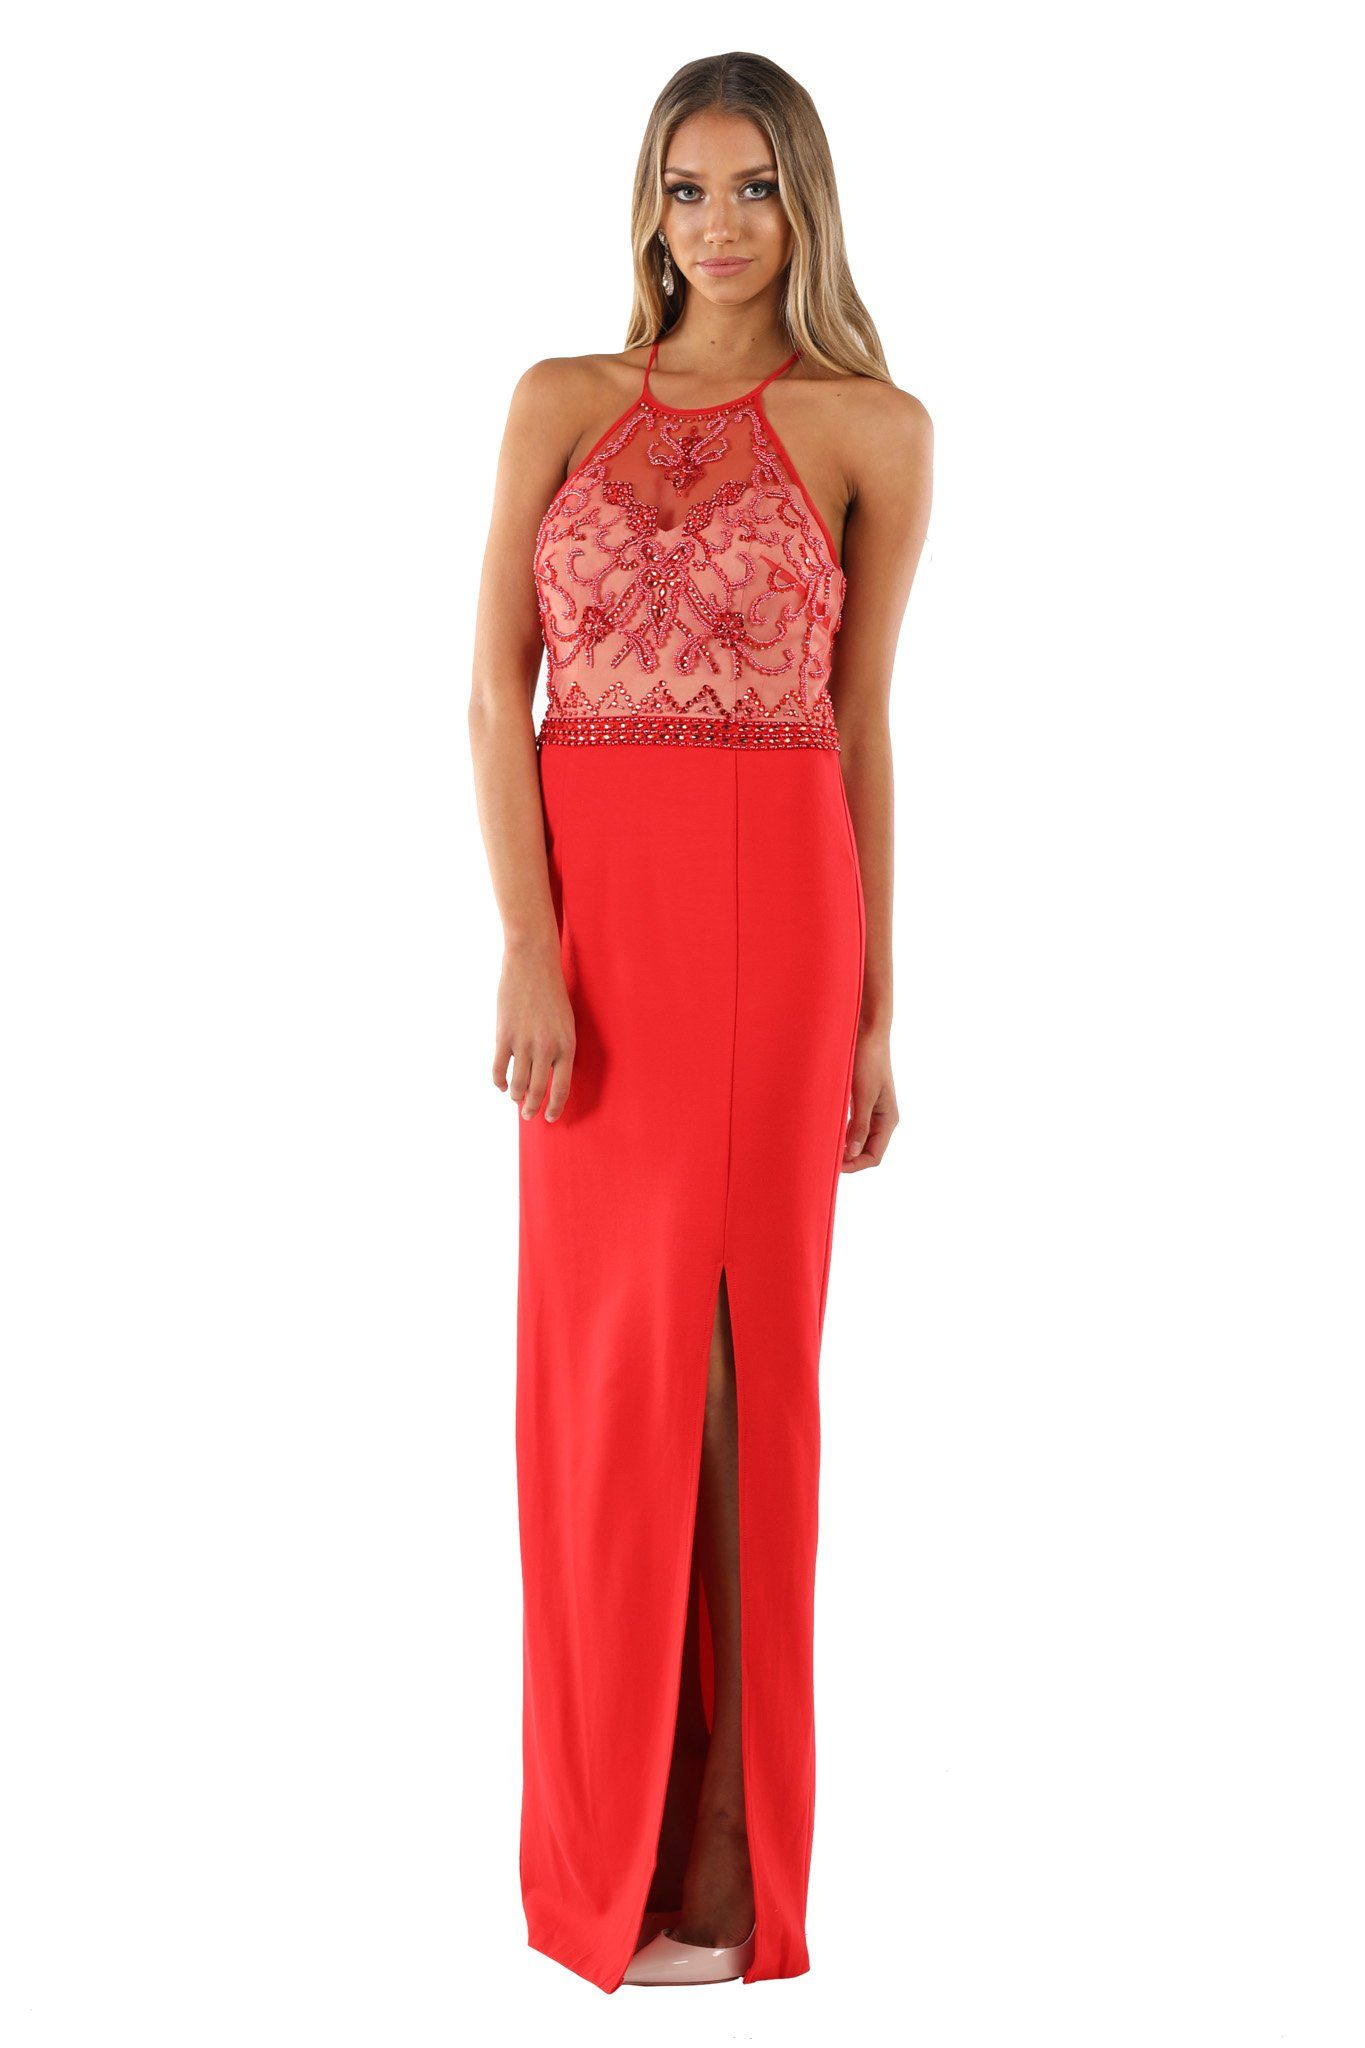 Red sleeveless maxi floor length column dress with high illusion neckline, beaded bodice, high front slit and adjustable crisscross back straps